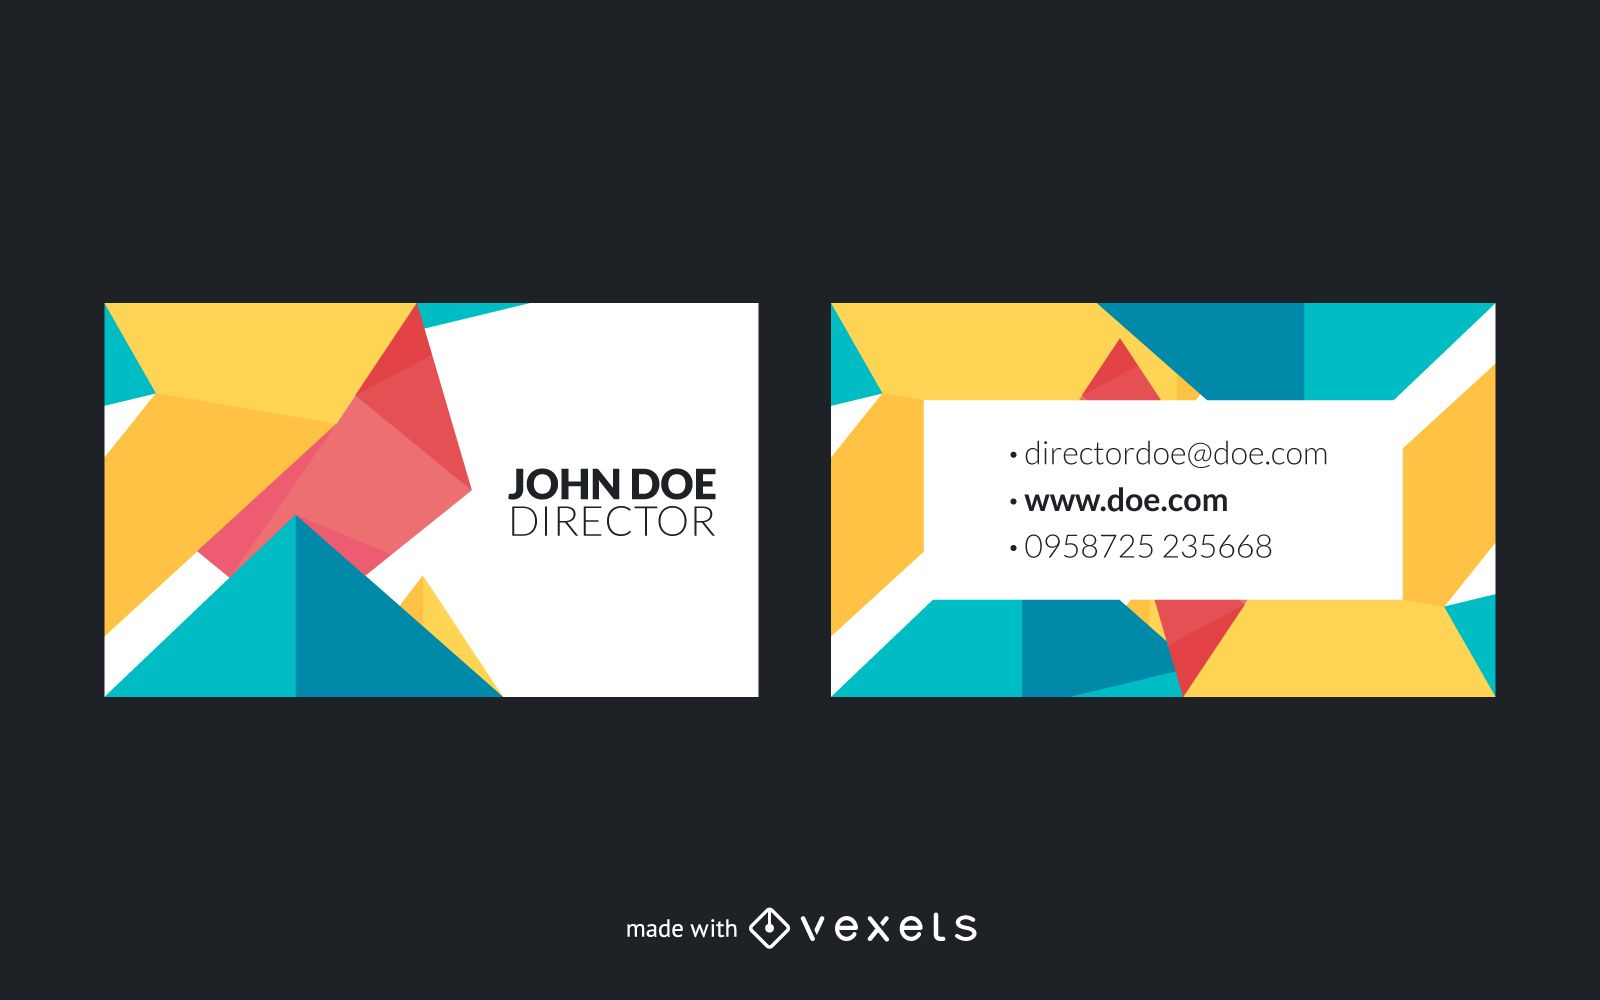 creative business card design on brushed metal background suitable